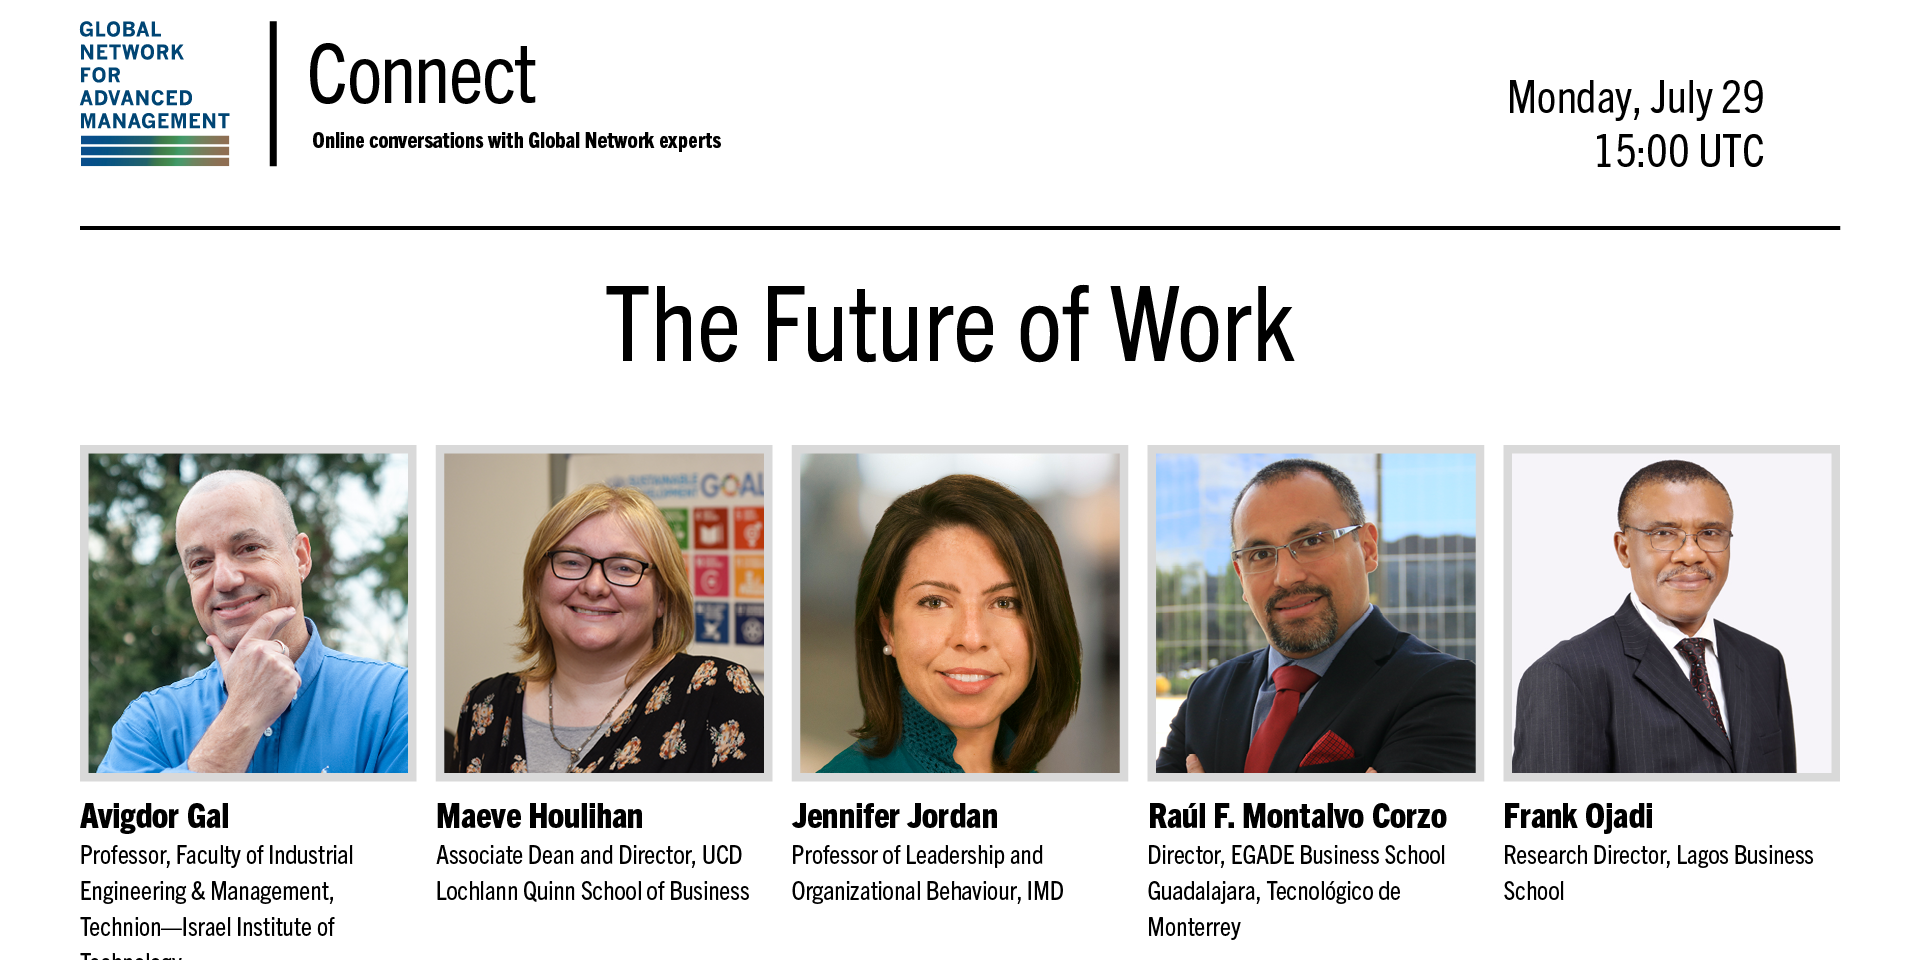 [WEBINAR] The Future of Work